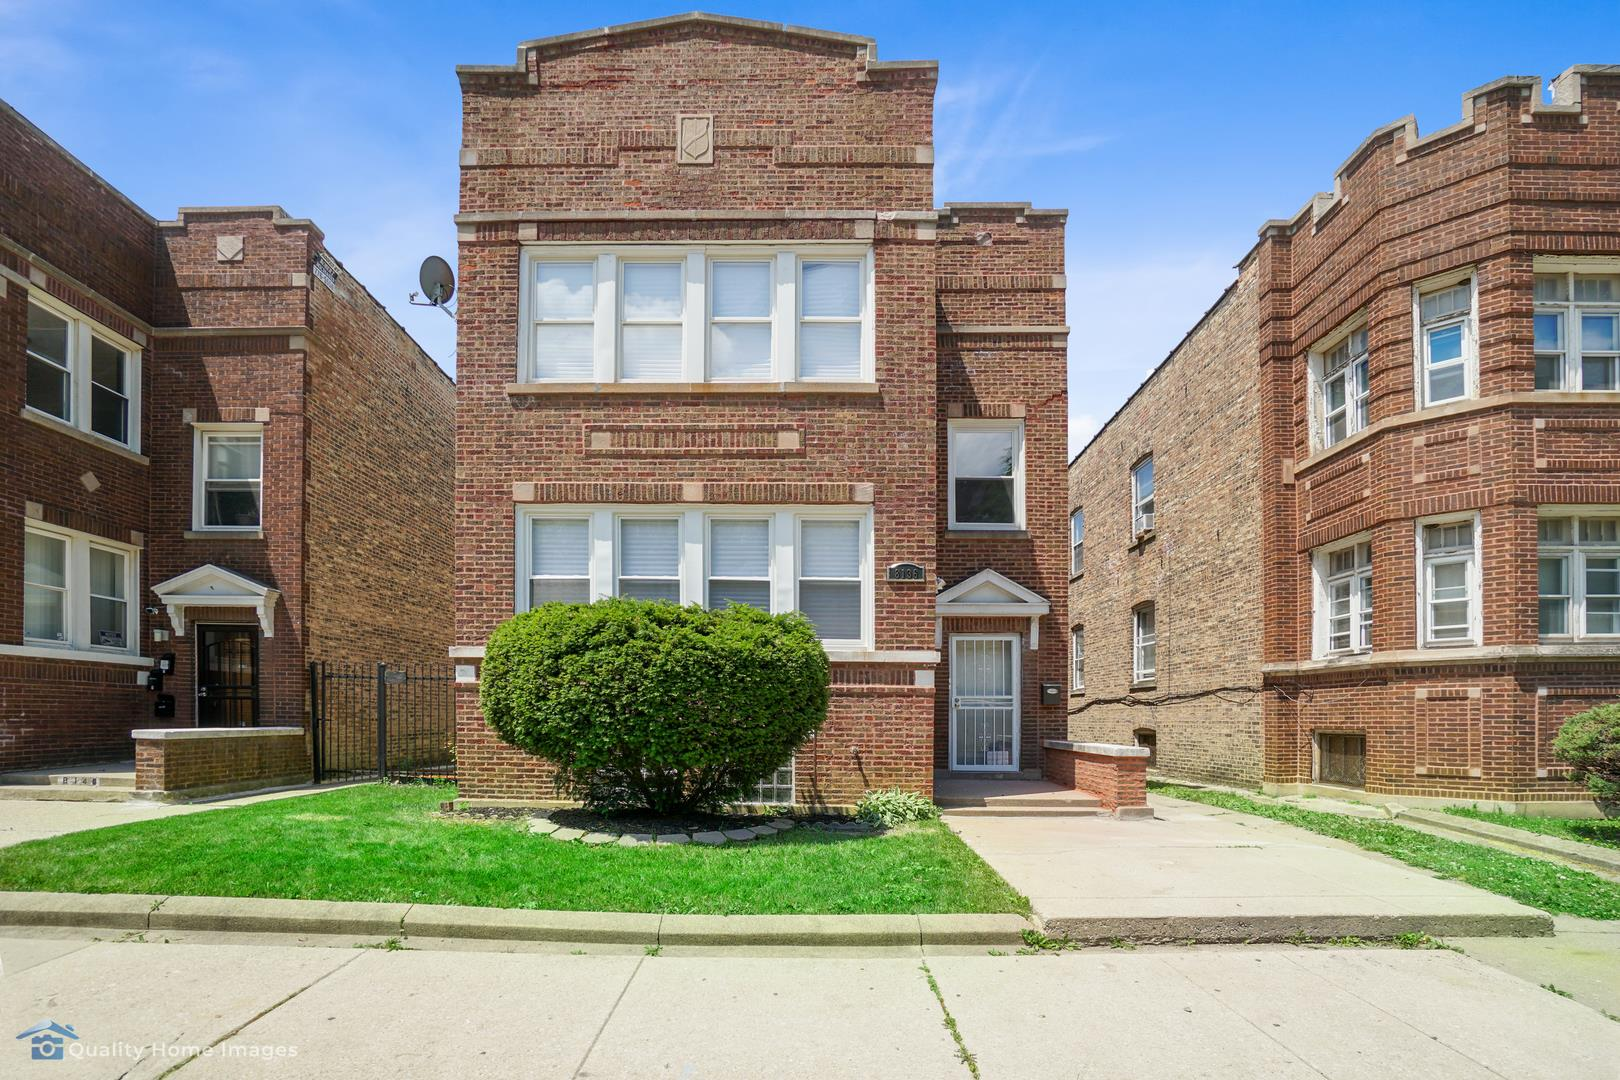 8136 S May Street, Chicago, IL 60620 - #: 10770713